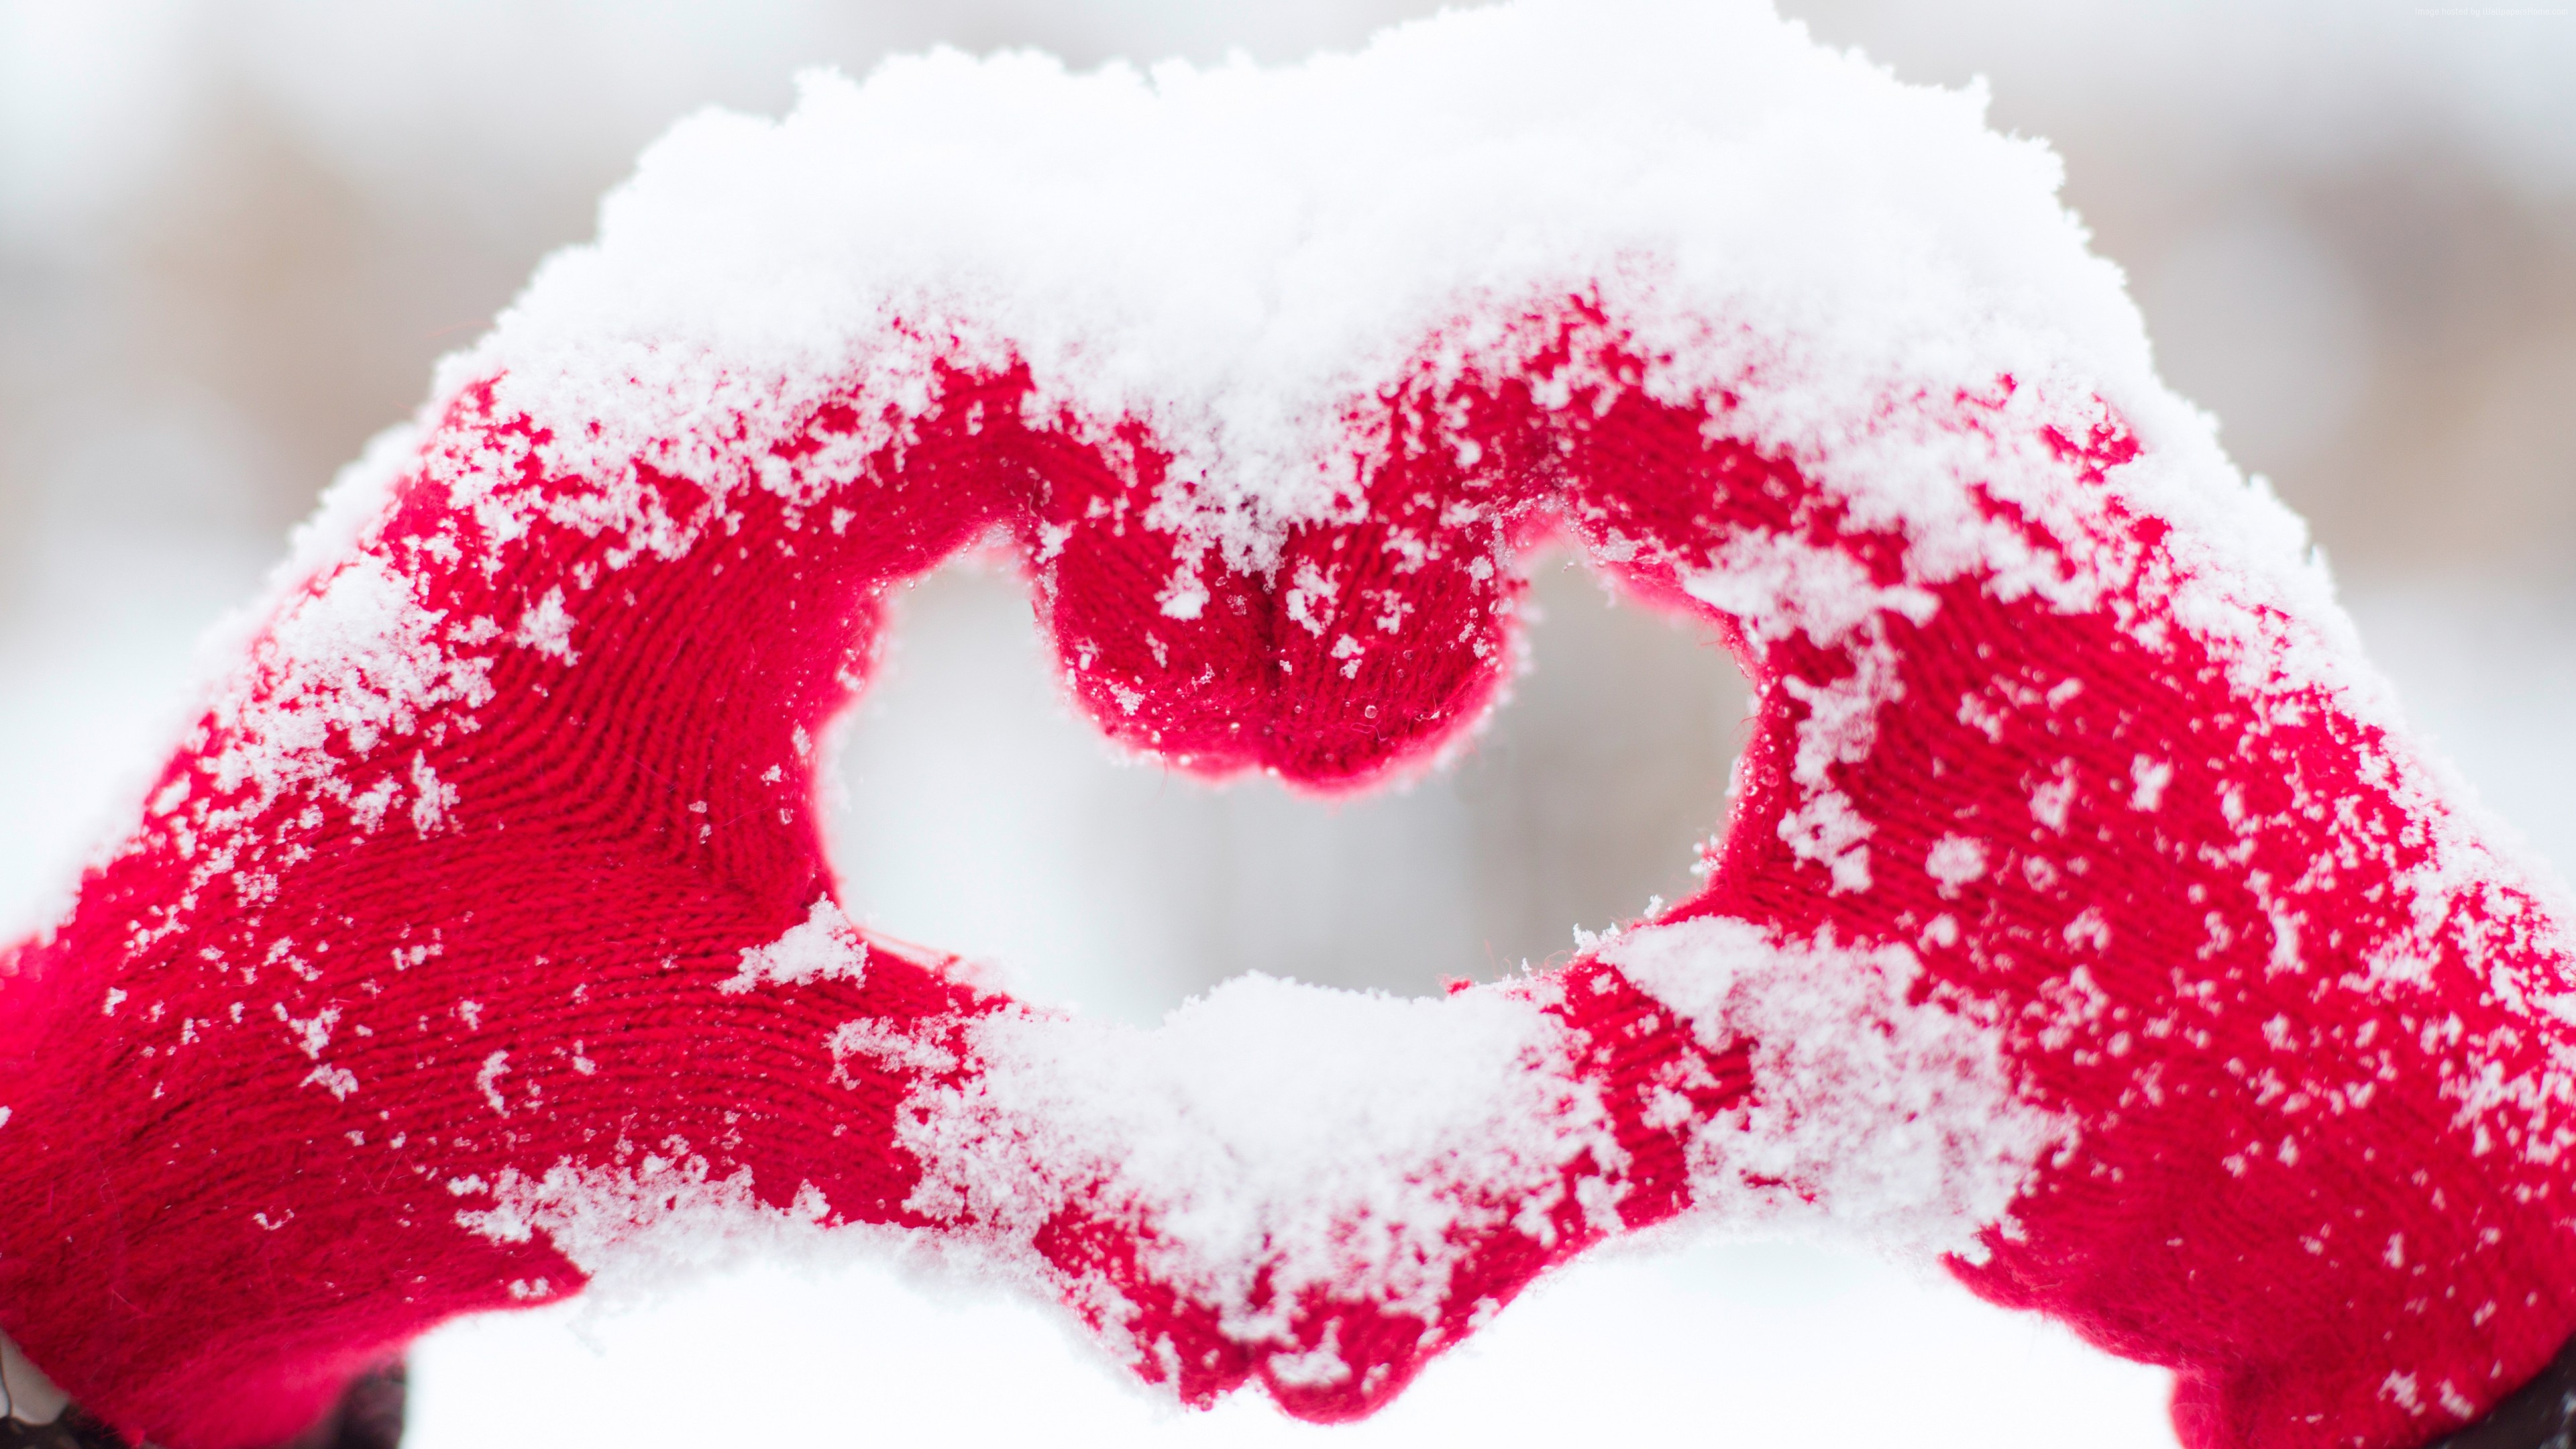 Stock Images love image, heart, snow, 4k, Stock Images